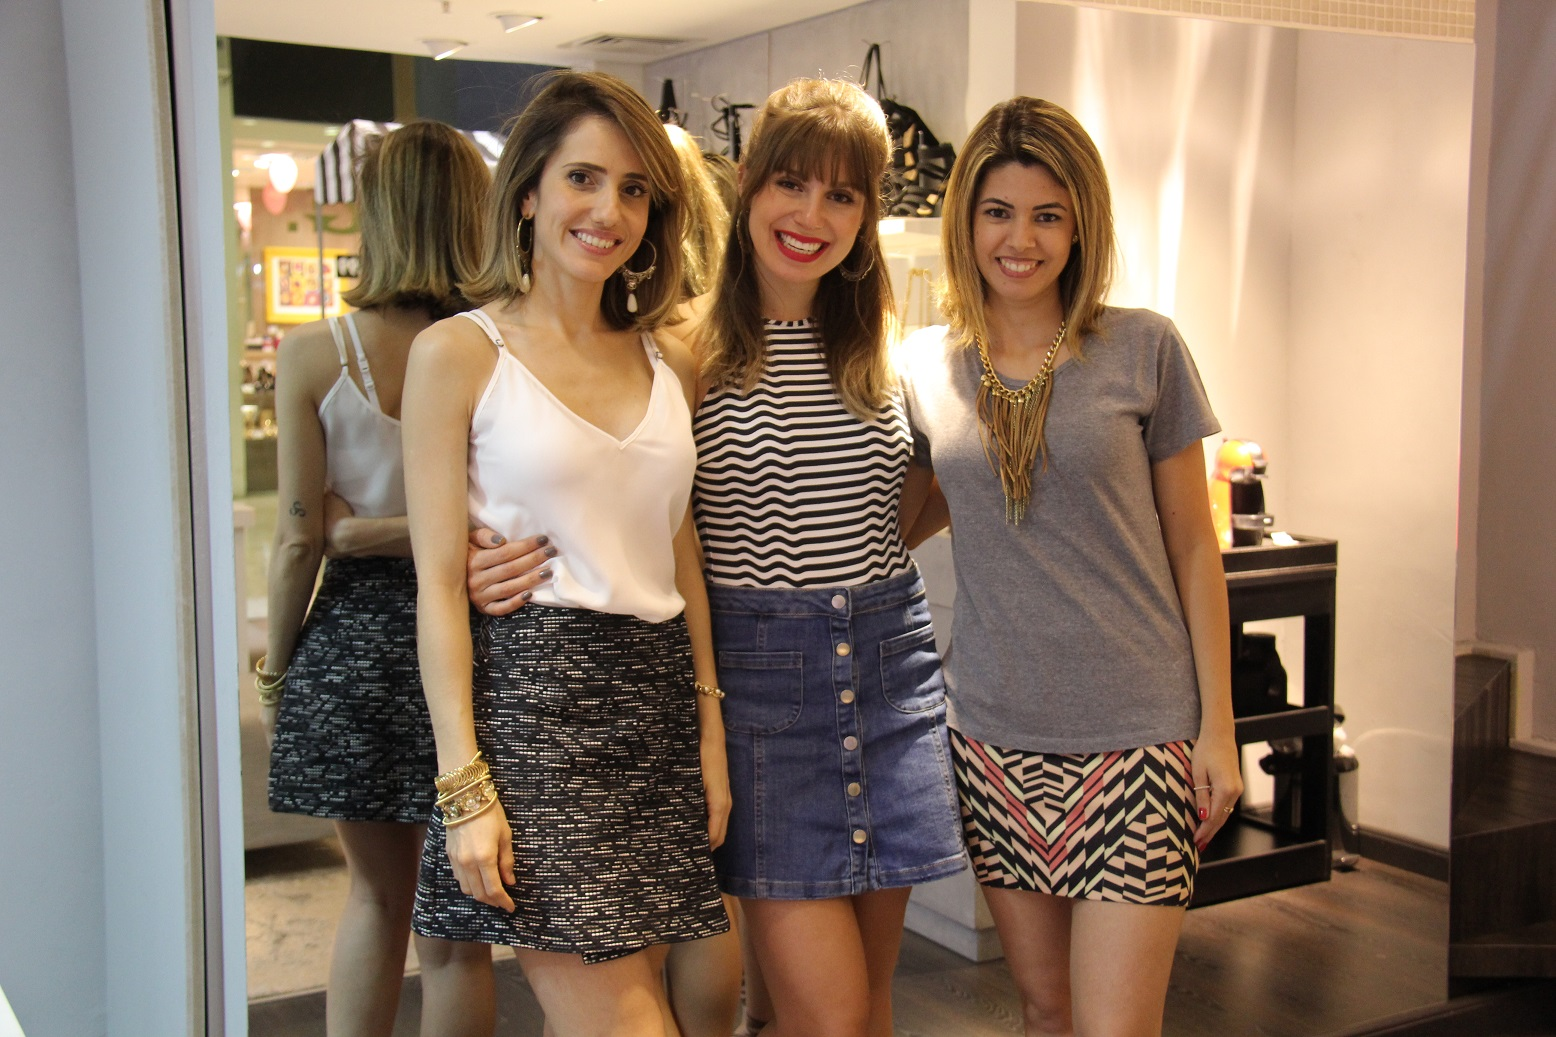 0976d54c8 Mirella Welcome Lilly's Closet Ateliermix Bauru 12 Mirella Welcome Lilly's  Closet Ateliermix Bauru 21